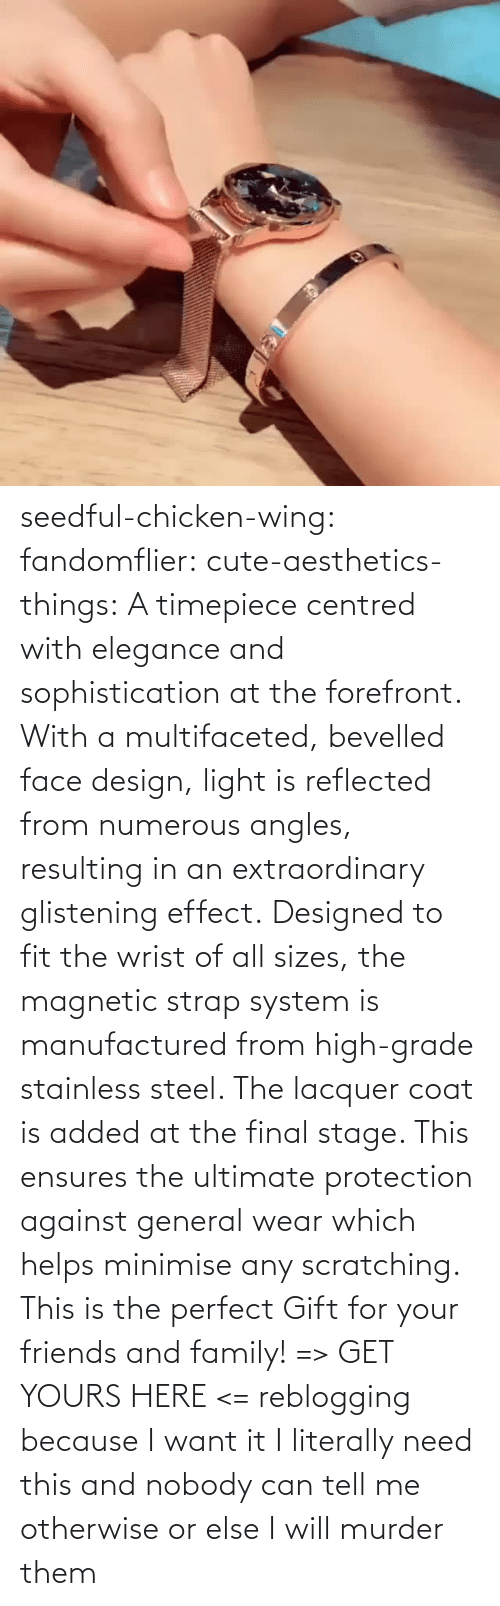 Here: seedful-chicken-wing: fandomflier:  cute-aesthetics-things:   A timepiece centred with elegance and sophistication at the forefront. With a multifaceted, bevelled face design, light is reflected from numerous angles, resulting in an extraordinary glistening effect. Designed to fit the wrist of all sizes, the magnetic strap system is manufactured from high-grade stainless steel. The lacquer coat is added at the final stage. This ensures the ultimate protection against general wear which helps minimise any scratching. This is the perfect Gift for your friends and family! => GET YOURS HERE <=   reblogging because I want it  I literally need this and nobody can tell me otherwise or else I will murder them